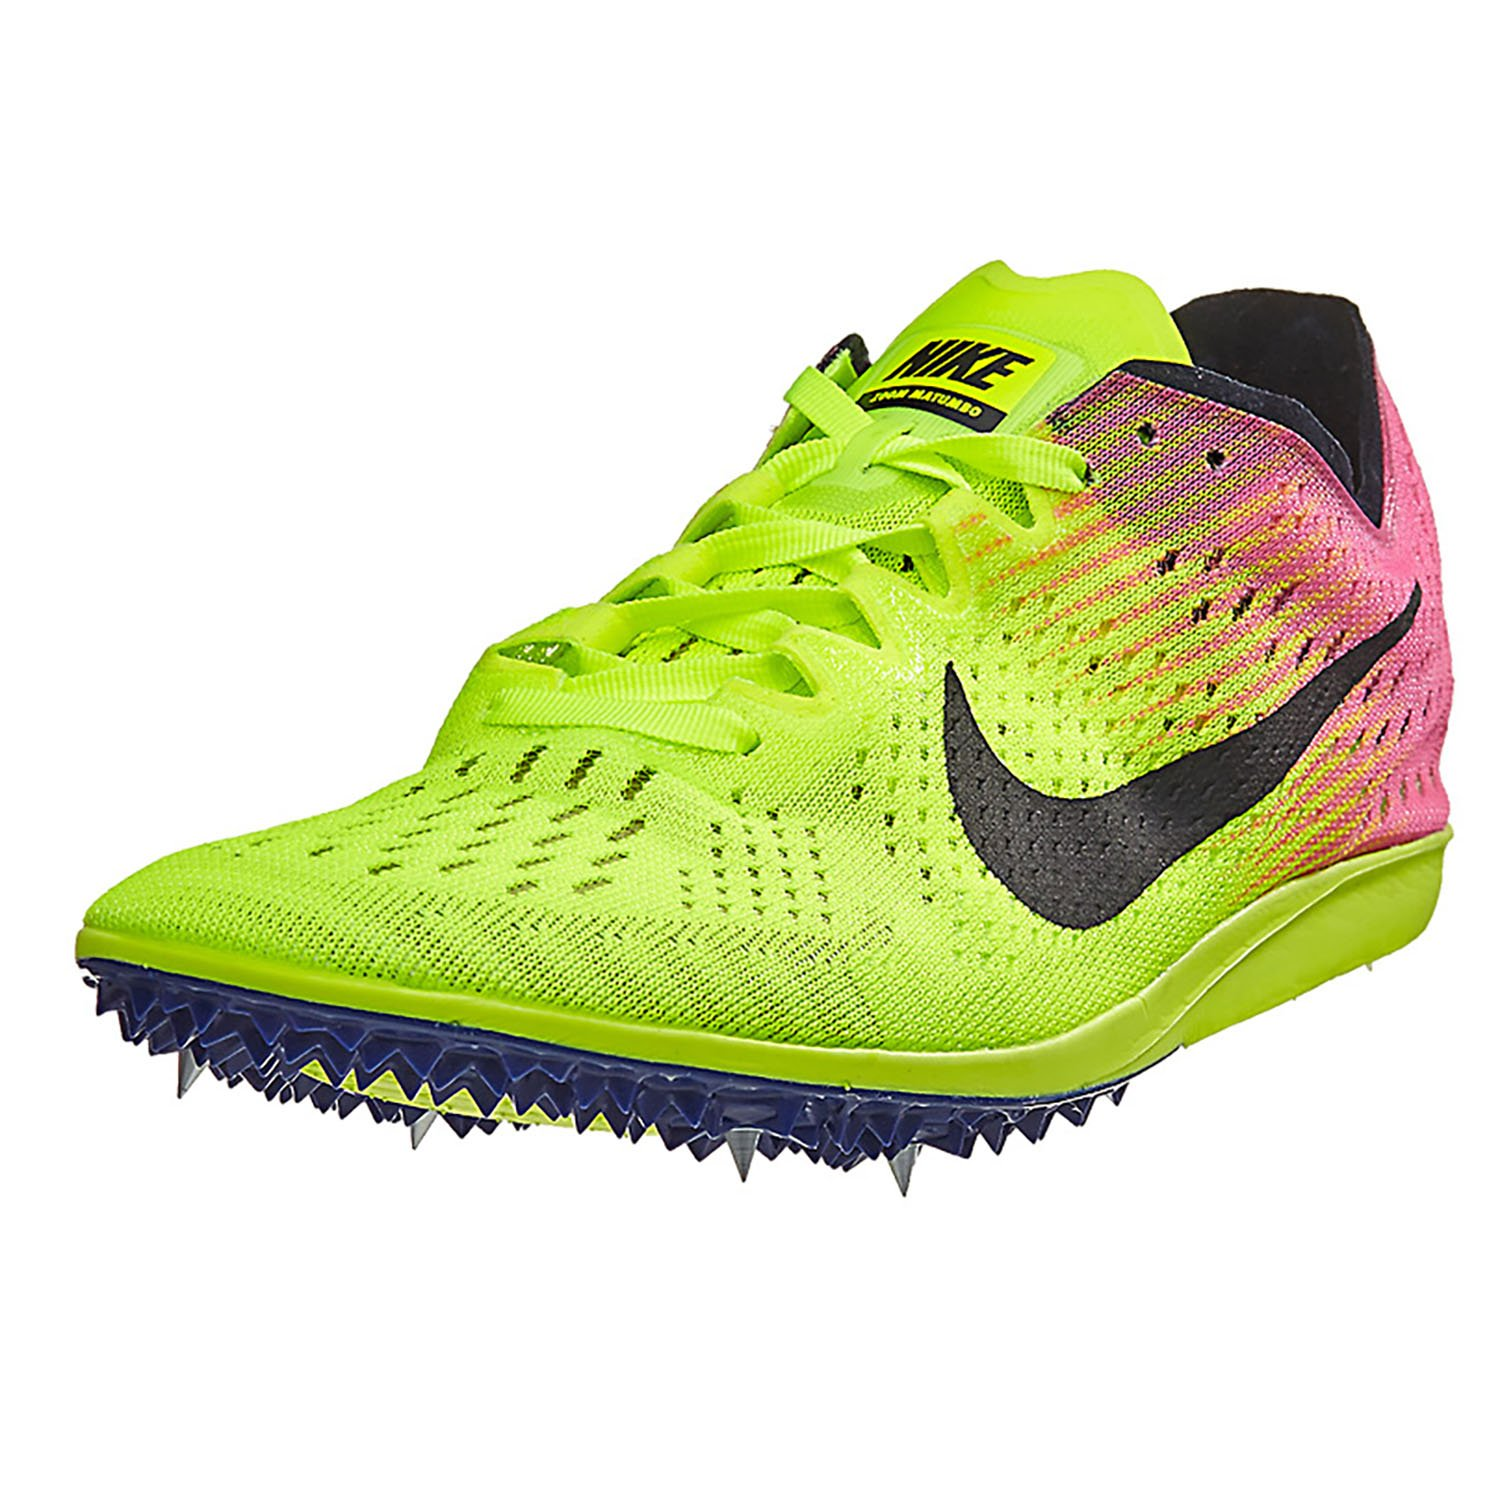 innovative design c2b73 8bed0 Amazon.com   Nike Zoom Matumbo Distance Track Spikes Shoes Mens Size 14  (Volt, Pink, Blacky)   Track   Field   Cross Country